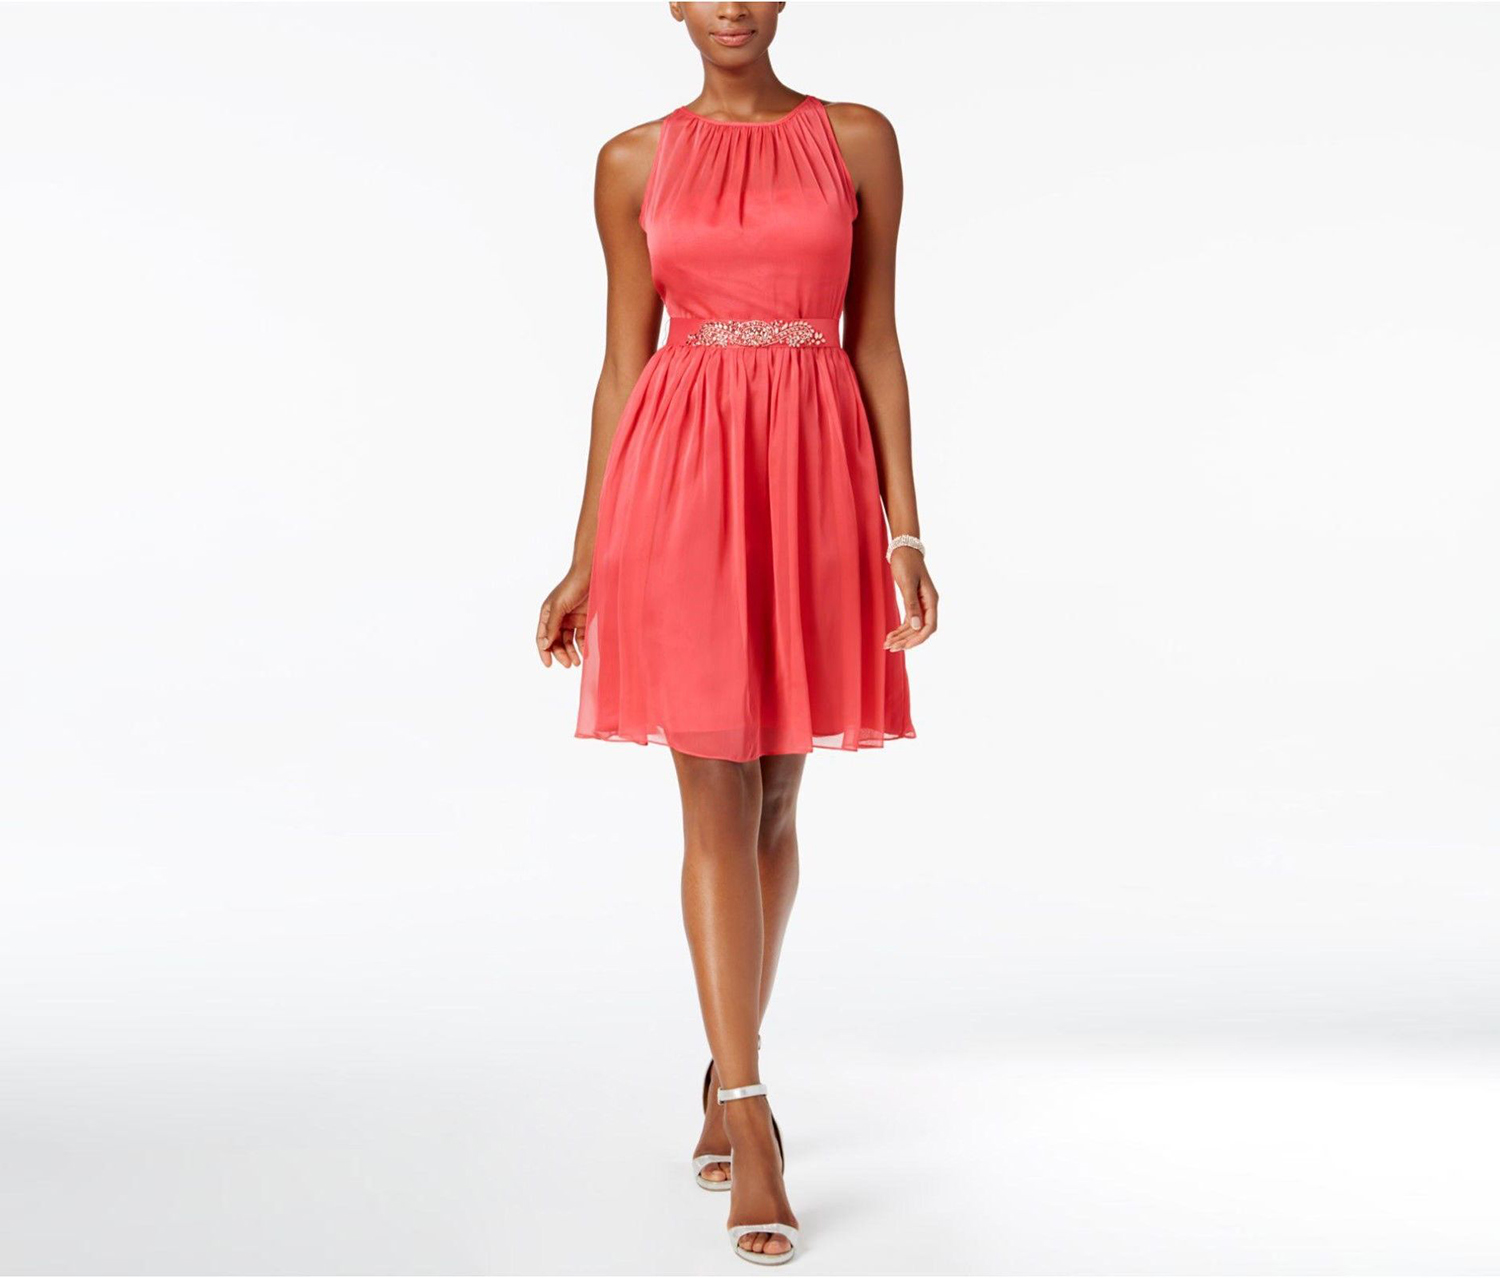 Adrianna Papell Women's Belted Chiffon Halter Dress French, Coral